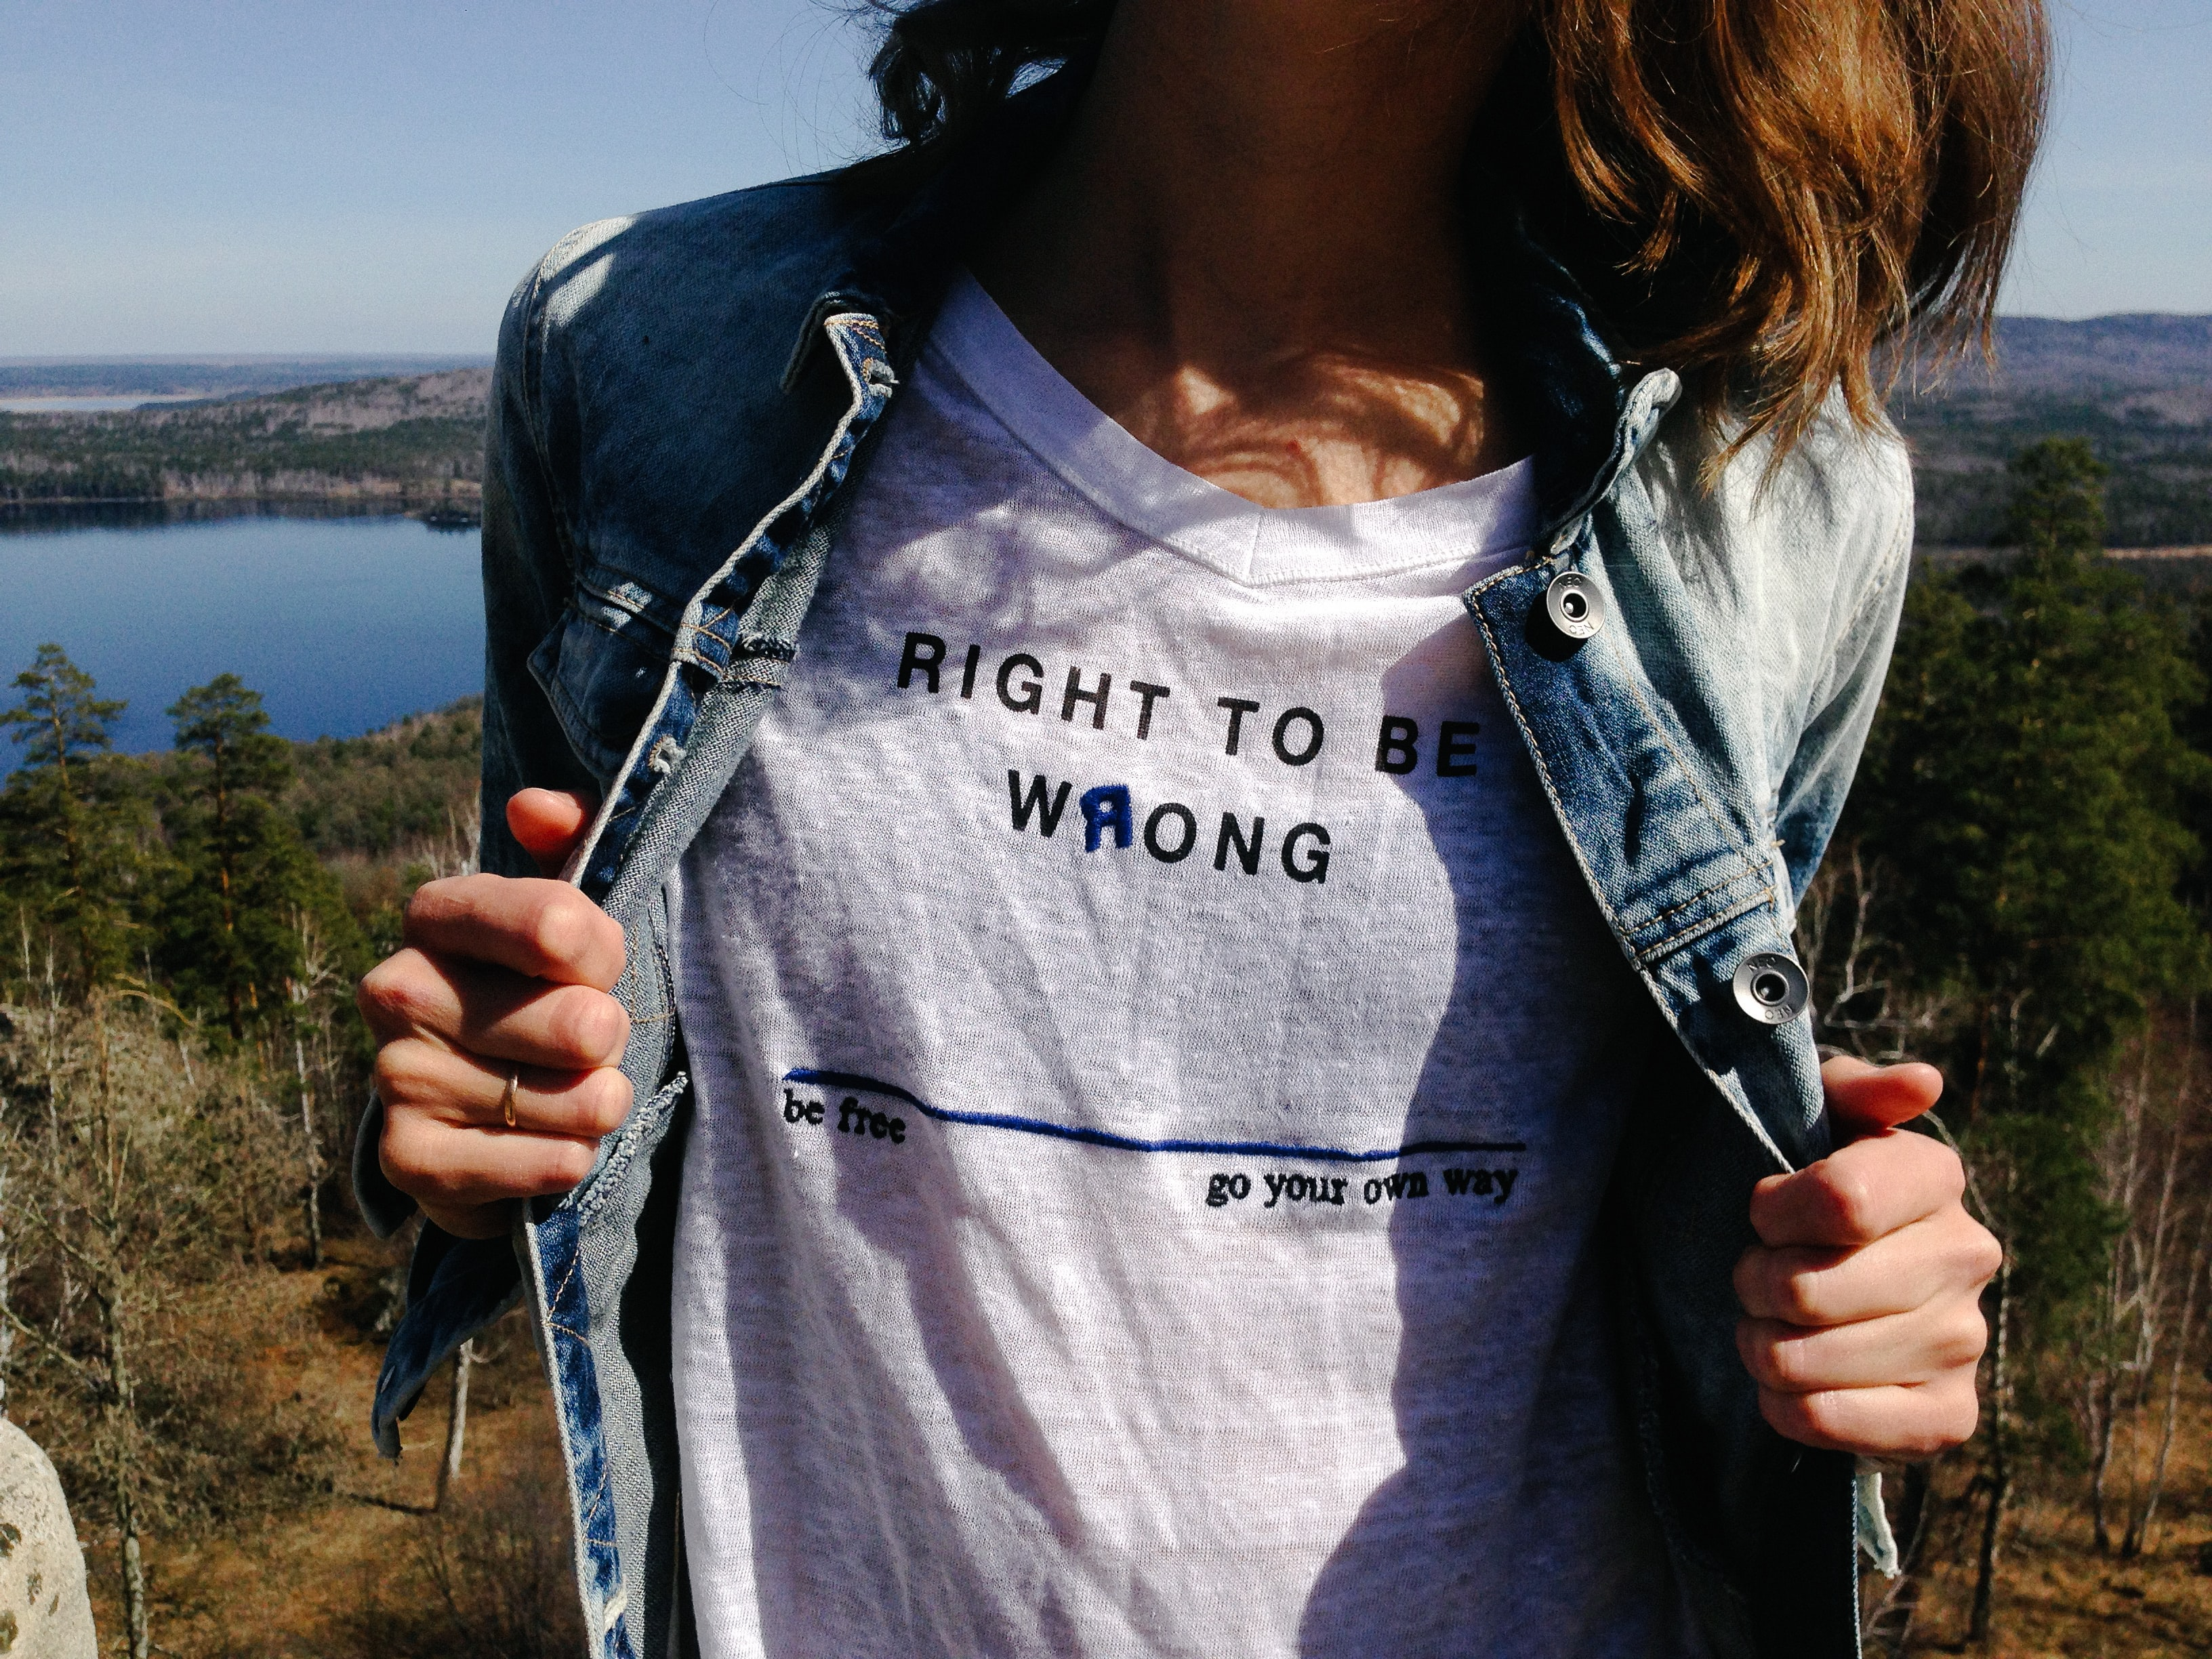 The Right Thing love stories